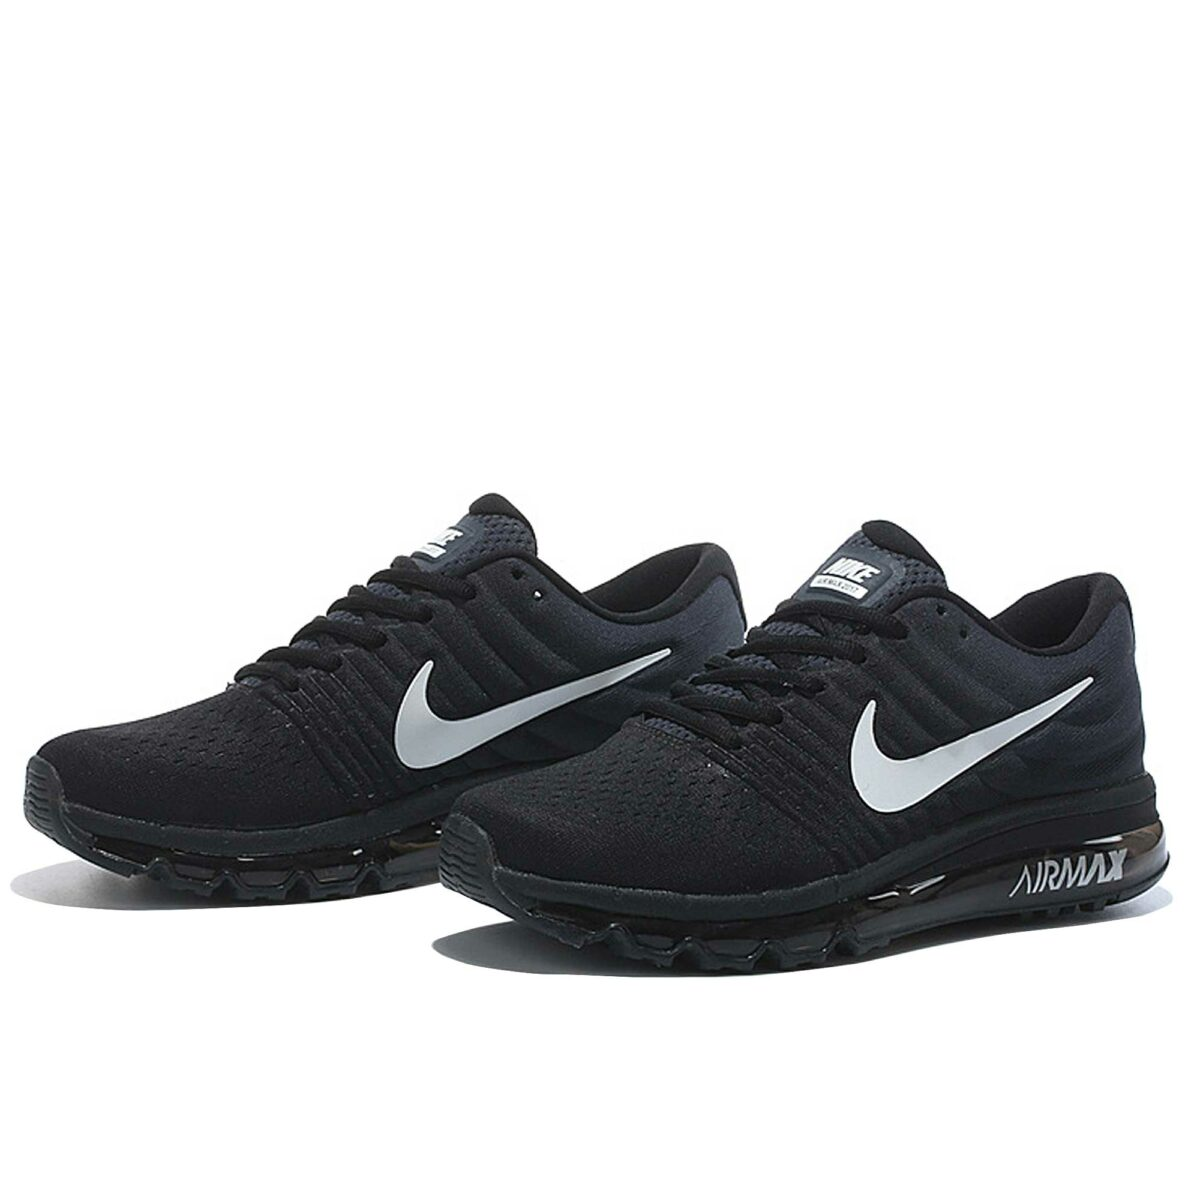 nike air max 2017 all black 849559-009 купить